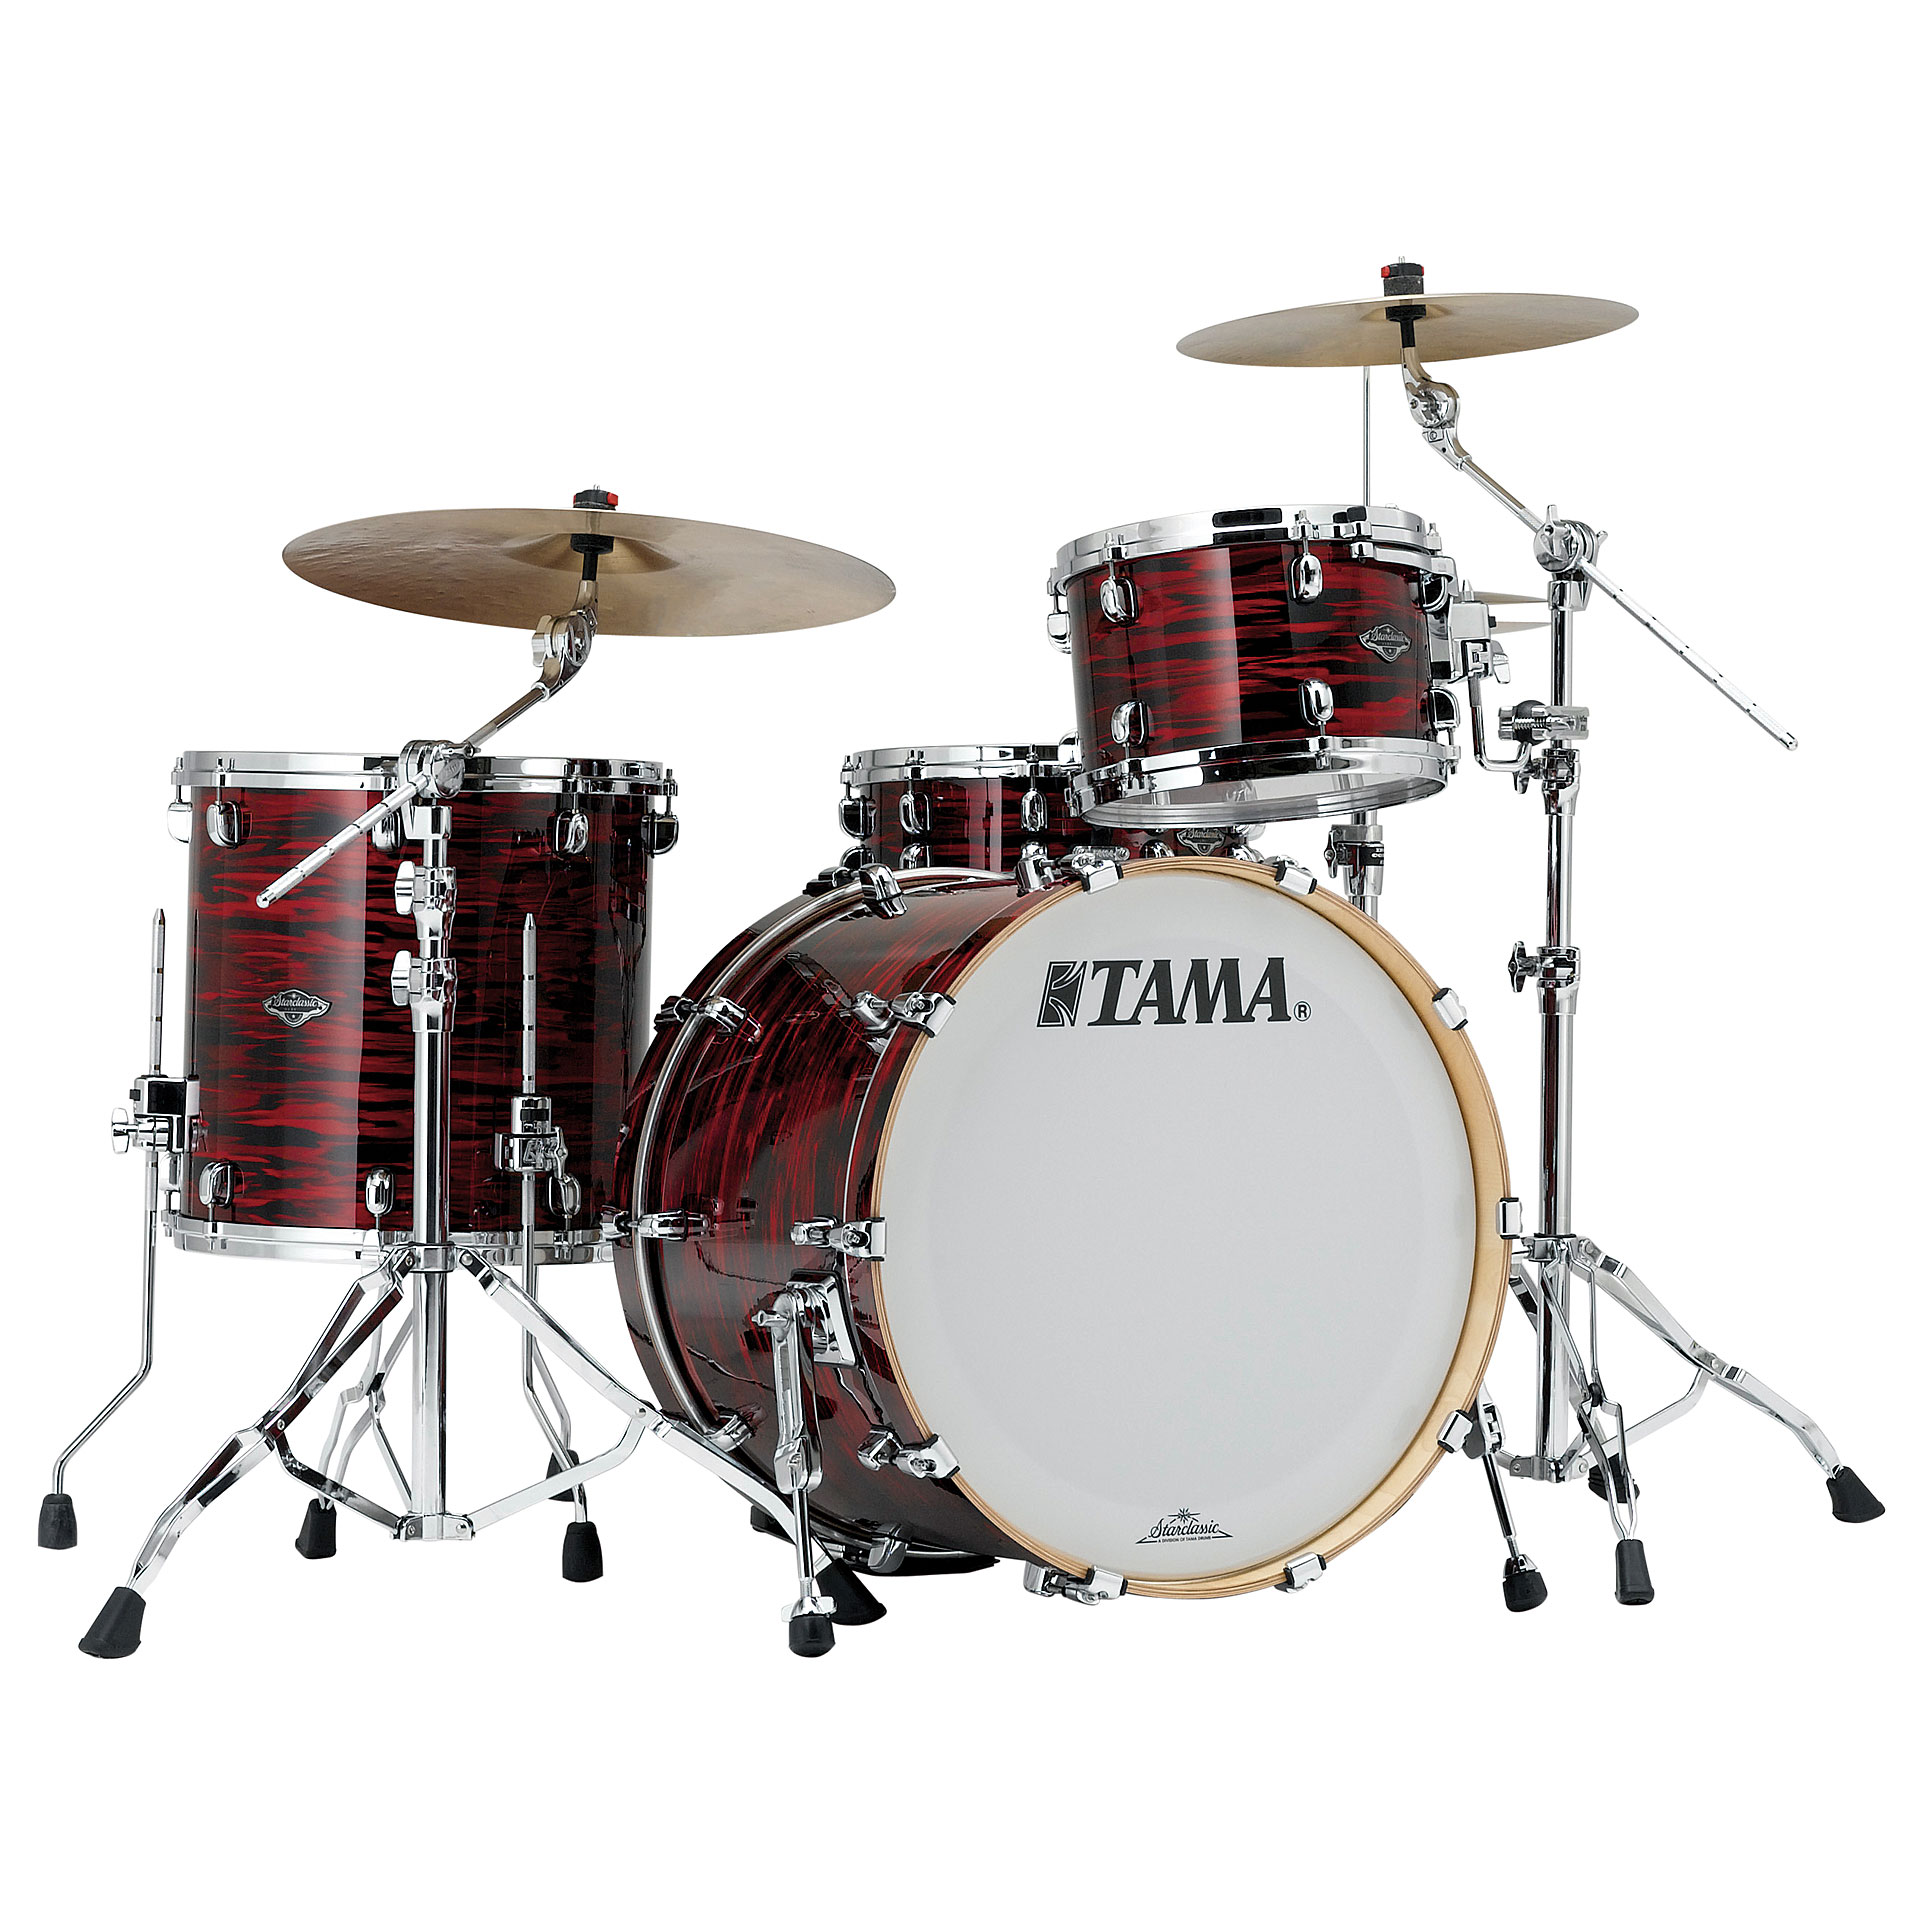 Tama starclassic performer efx pr32rzs roy drum kit for Classic house drums